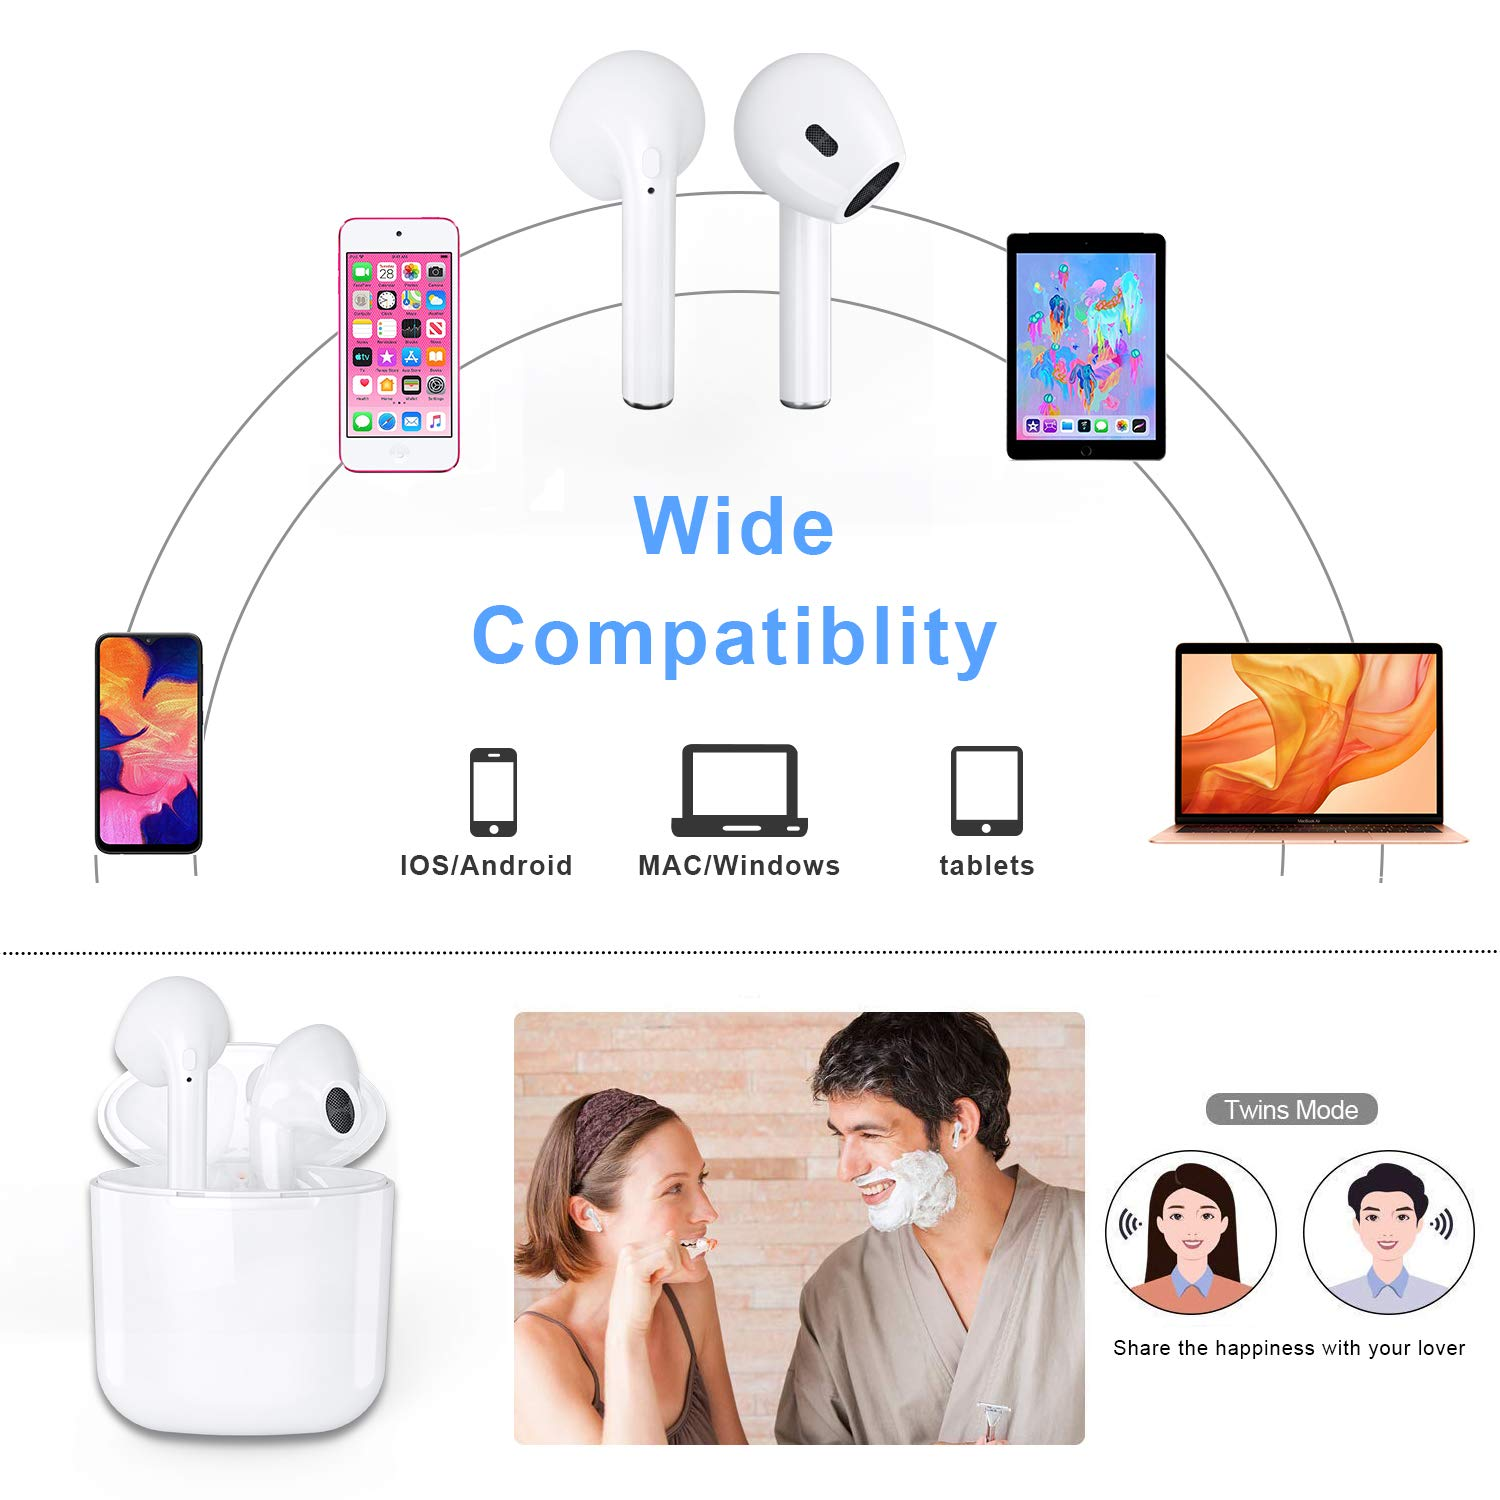 ZBC Wireless Earbuds I9 Bluetooth Earphones V5.0 Headphones in-Ear TWS Headsets Auto-Pair Airpods Mic Charging Case Sport Running Mini True Stereo Sound Noise Reduction Compatible iOS Android Samsung by ZBC (Image #5)